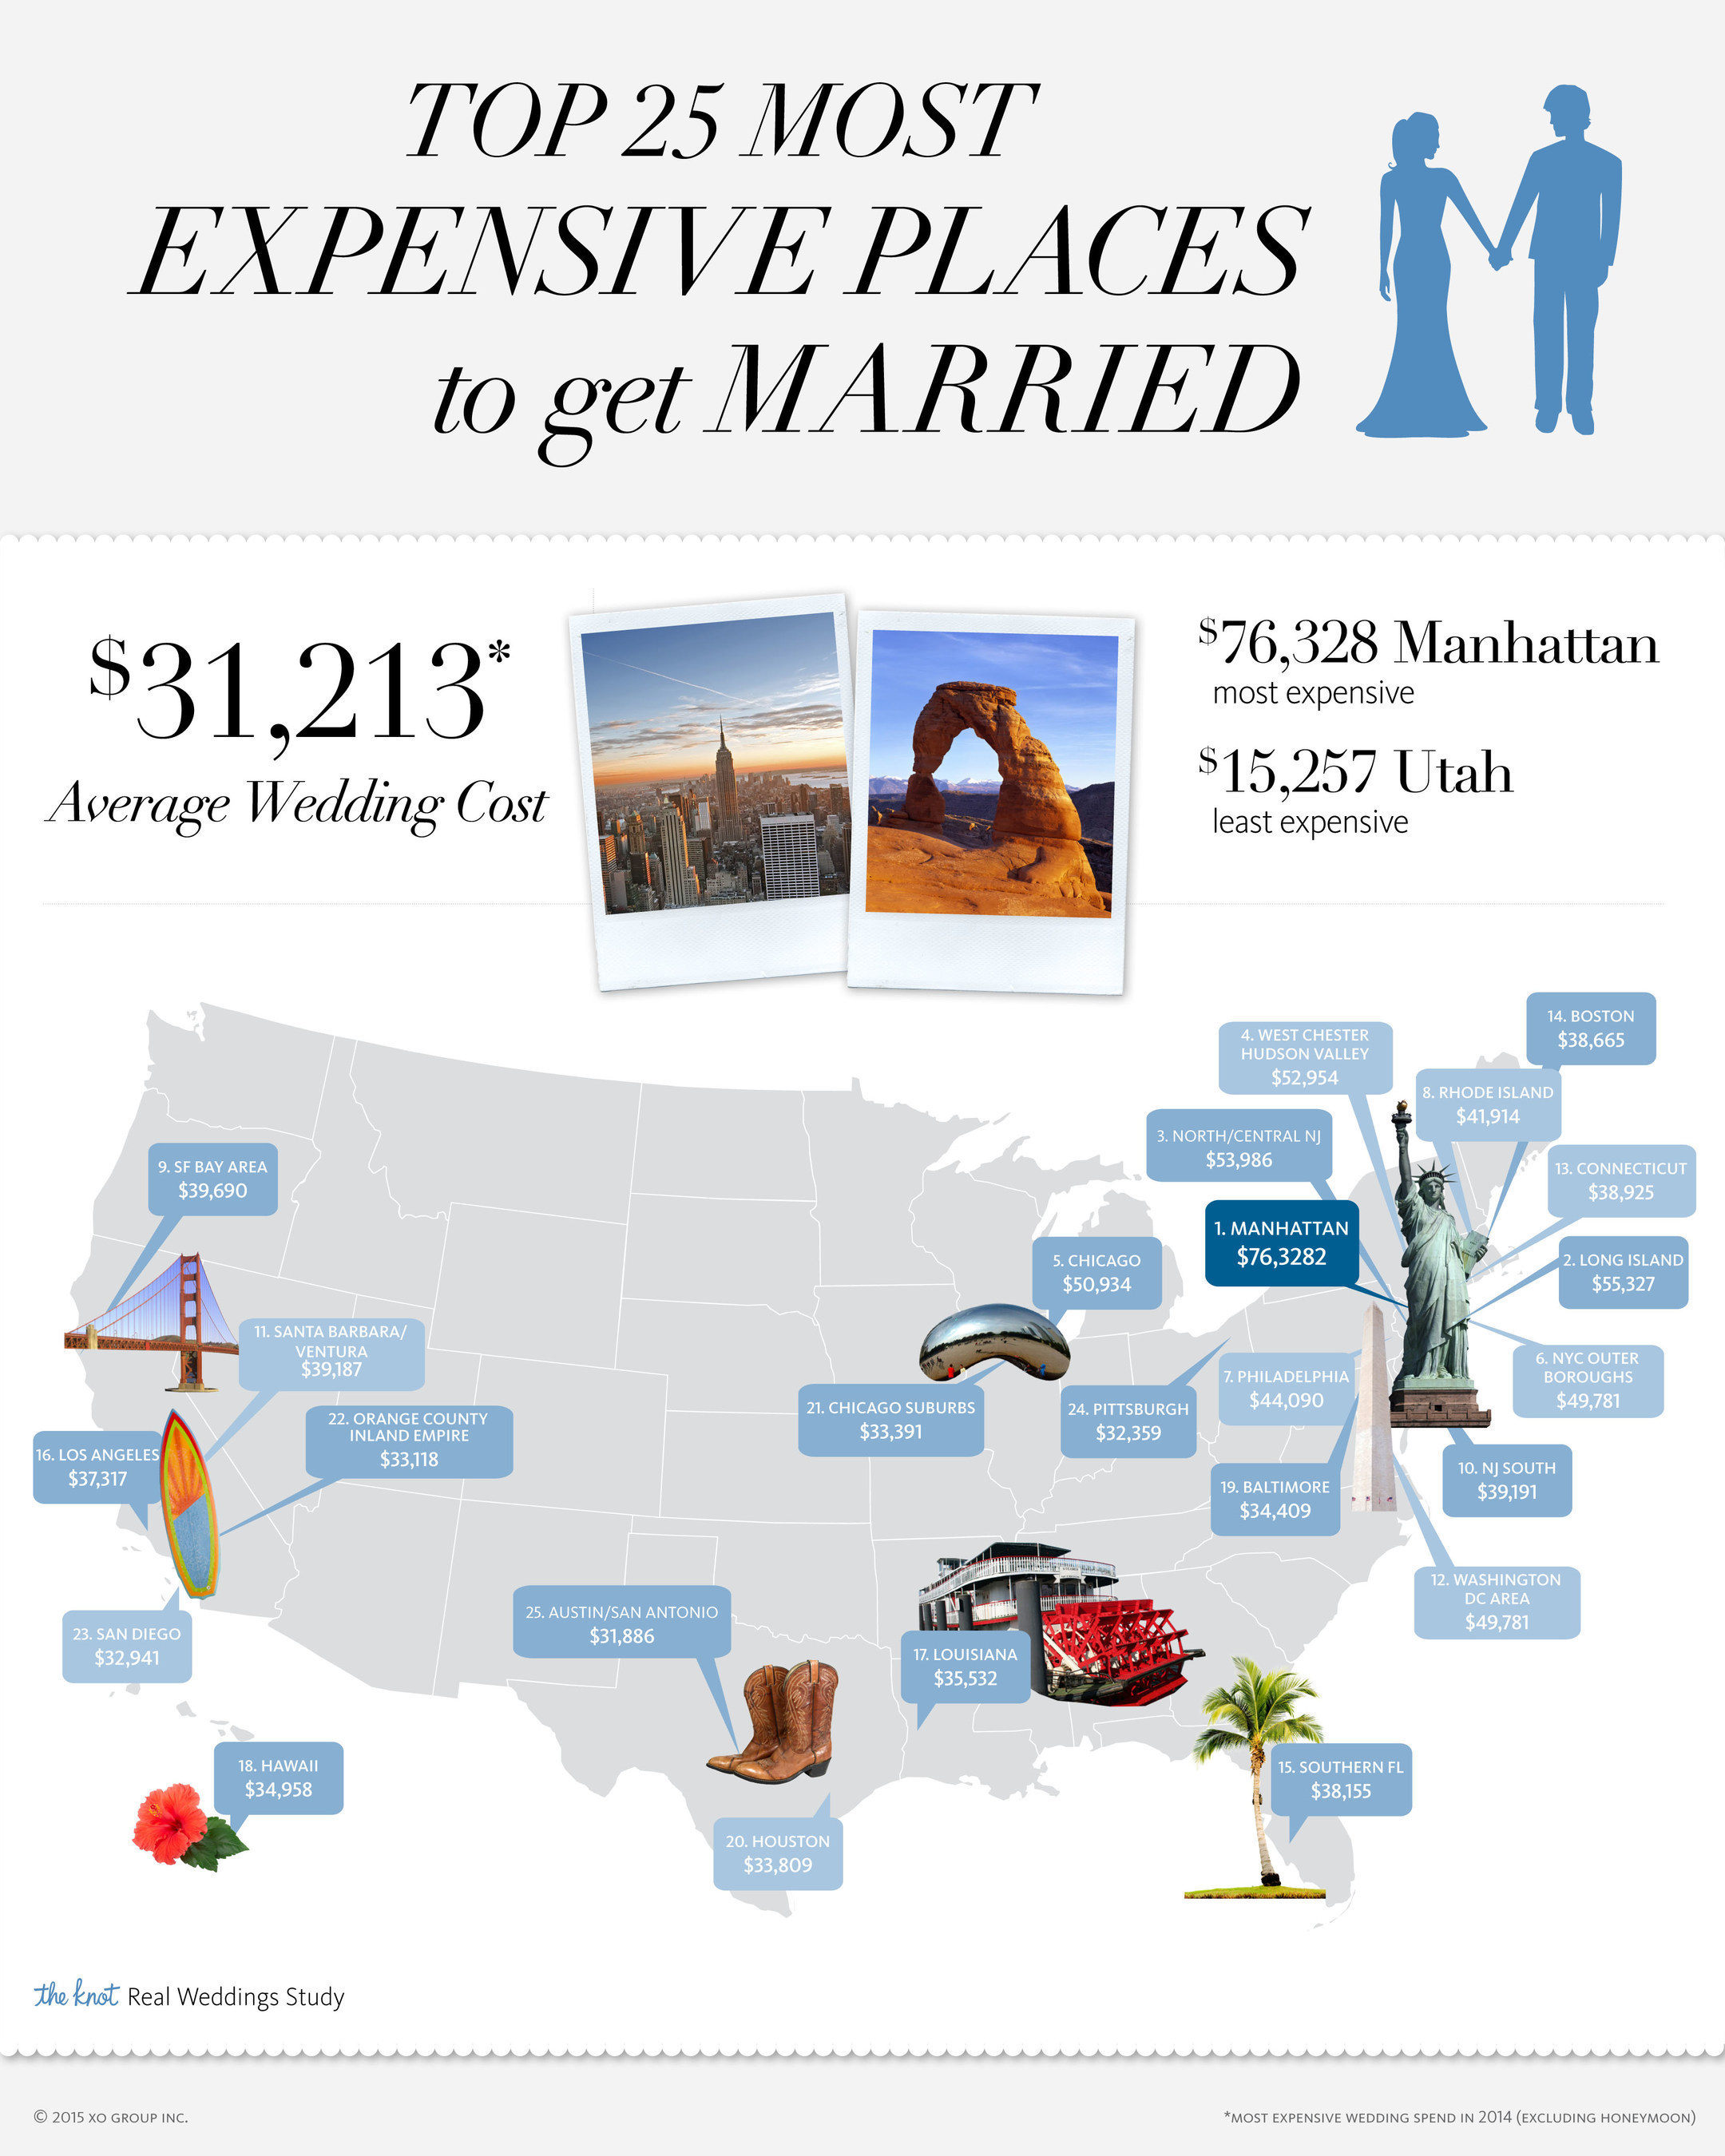 The Knot, The #1 Wedding Site, Releases 2014 Real Weddings Study Statistics